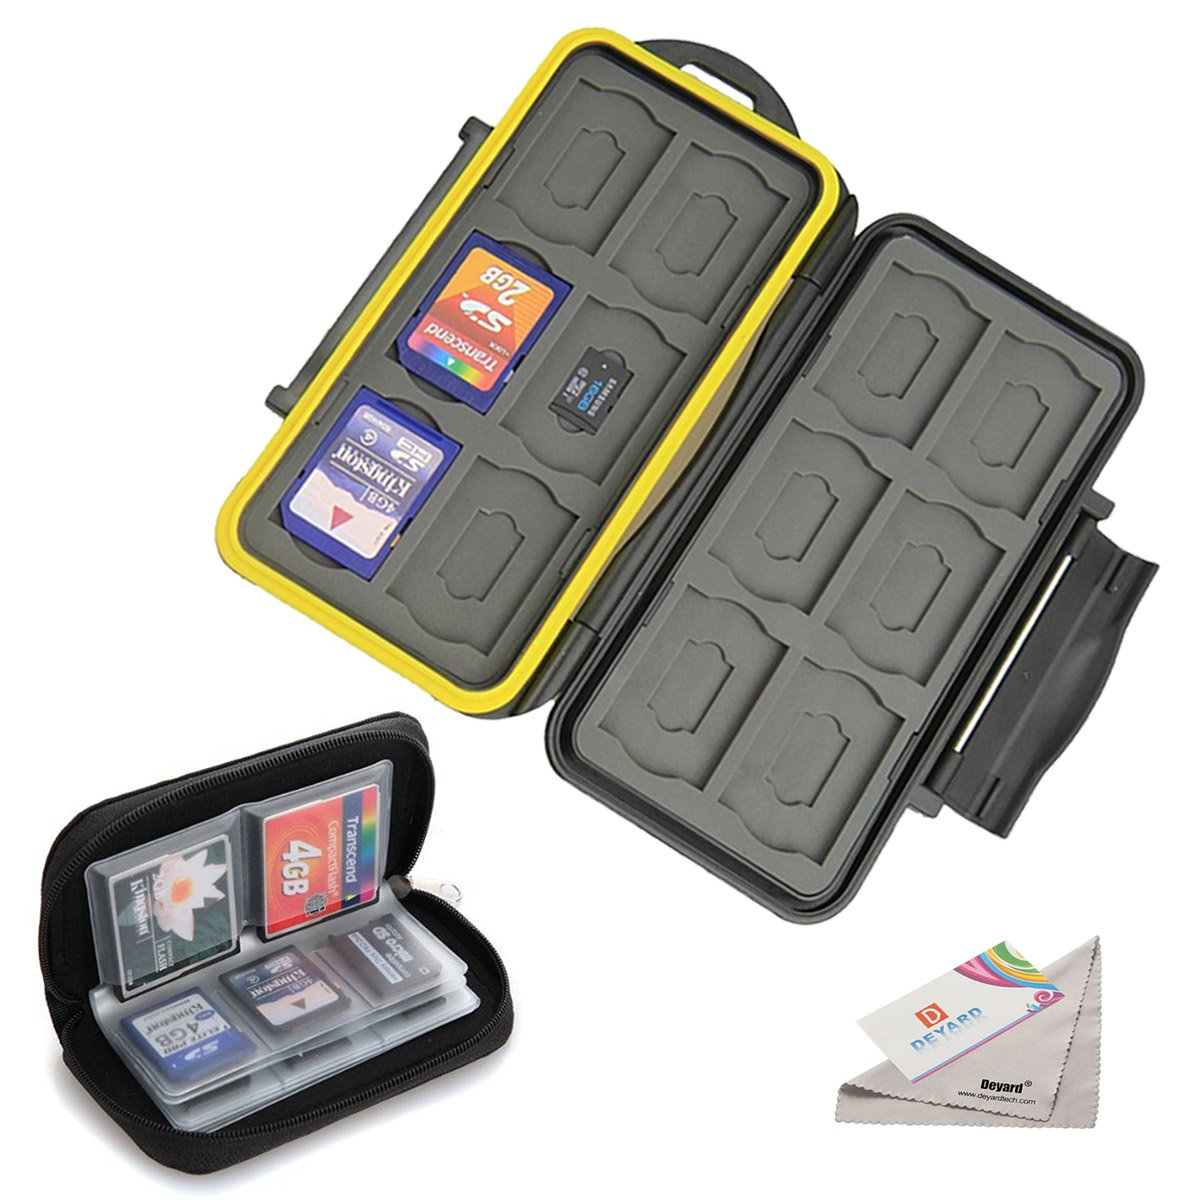 Deyard Water-resistant Memory Card Case Shockproof Memory Card Carrying Box 24 Slots + Pouch Zippered Storage Memory Card Bag 22 Slots for SD SDHC MMC CF Micro SD Cards Deyard Tech K020-02